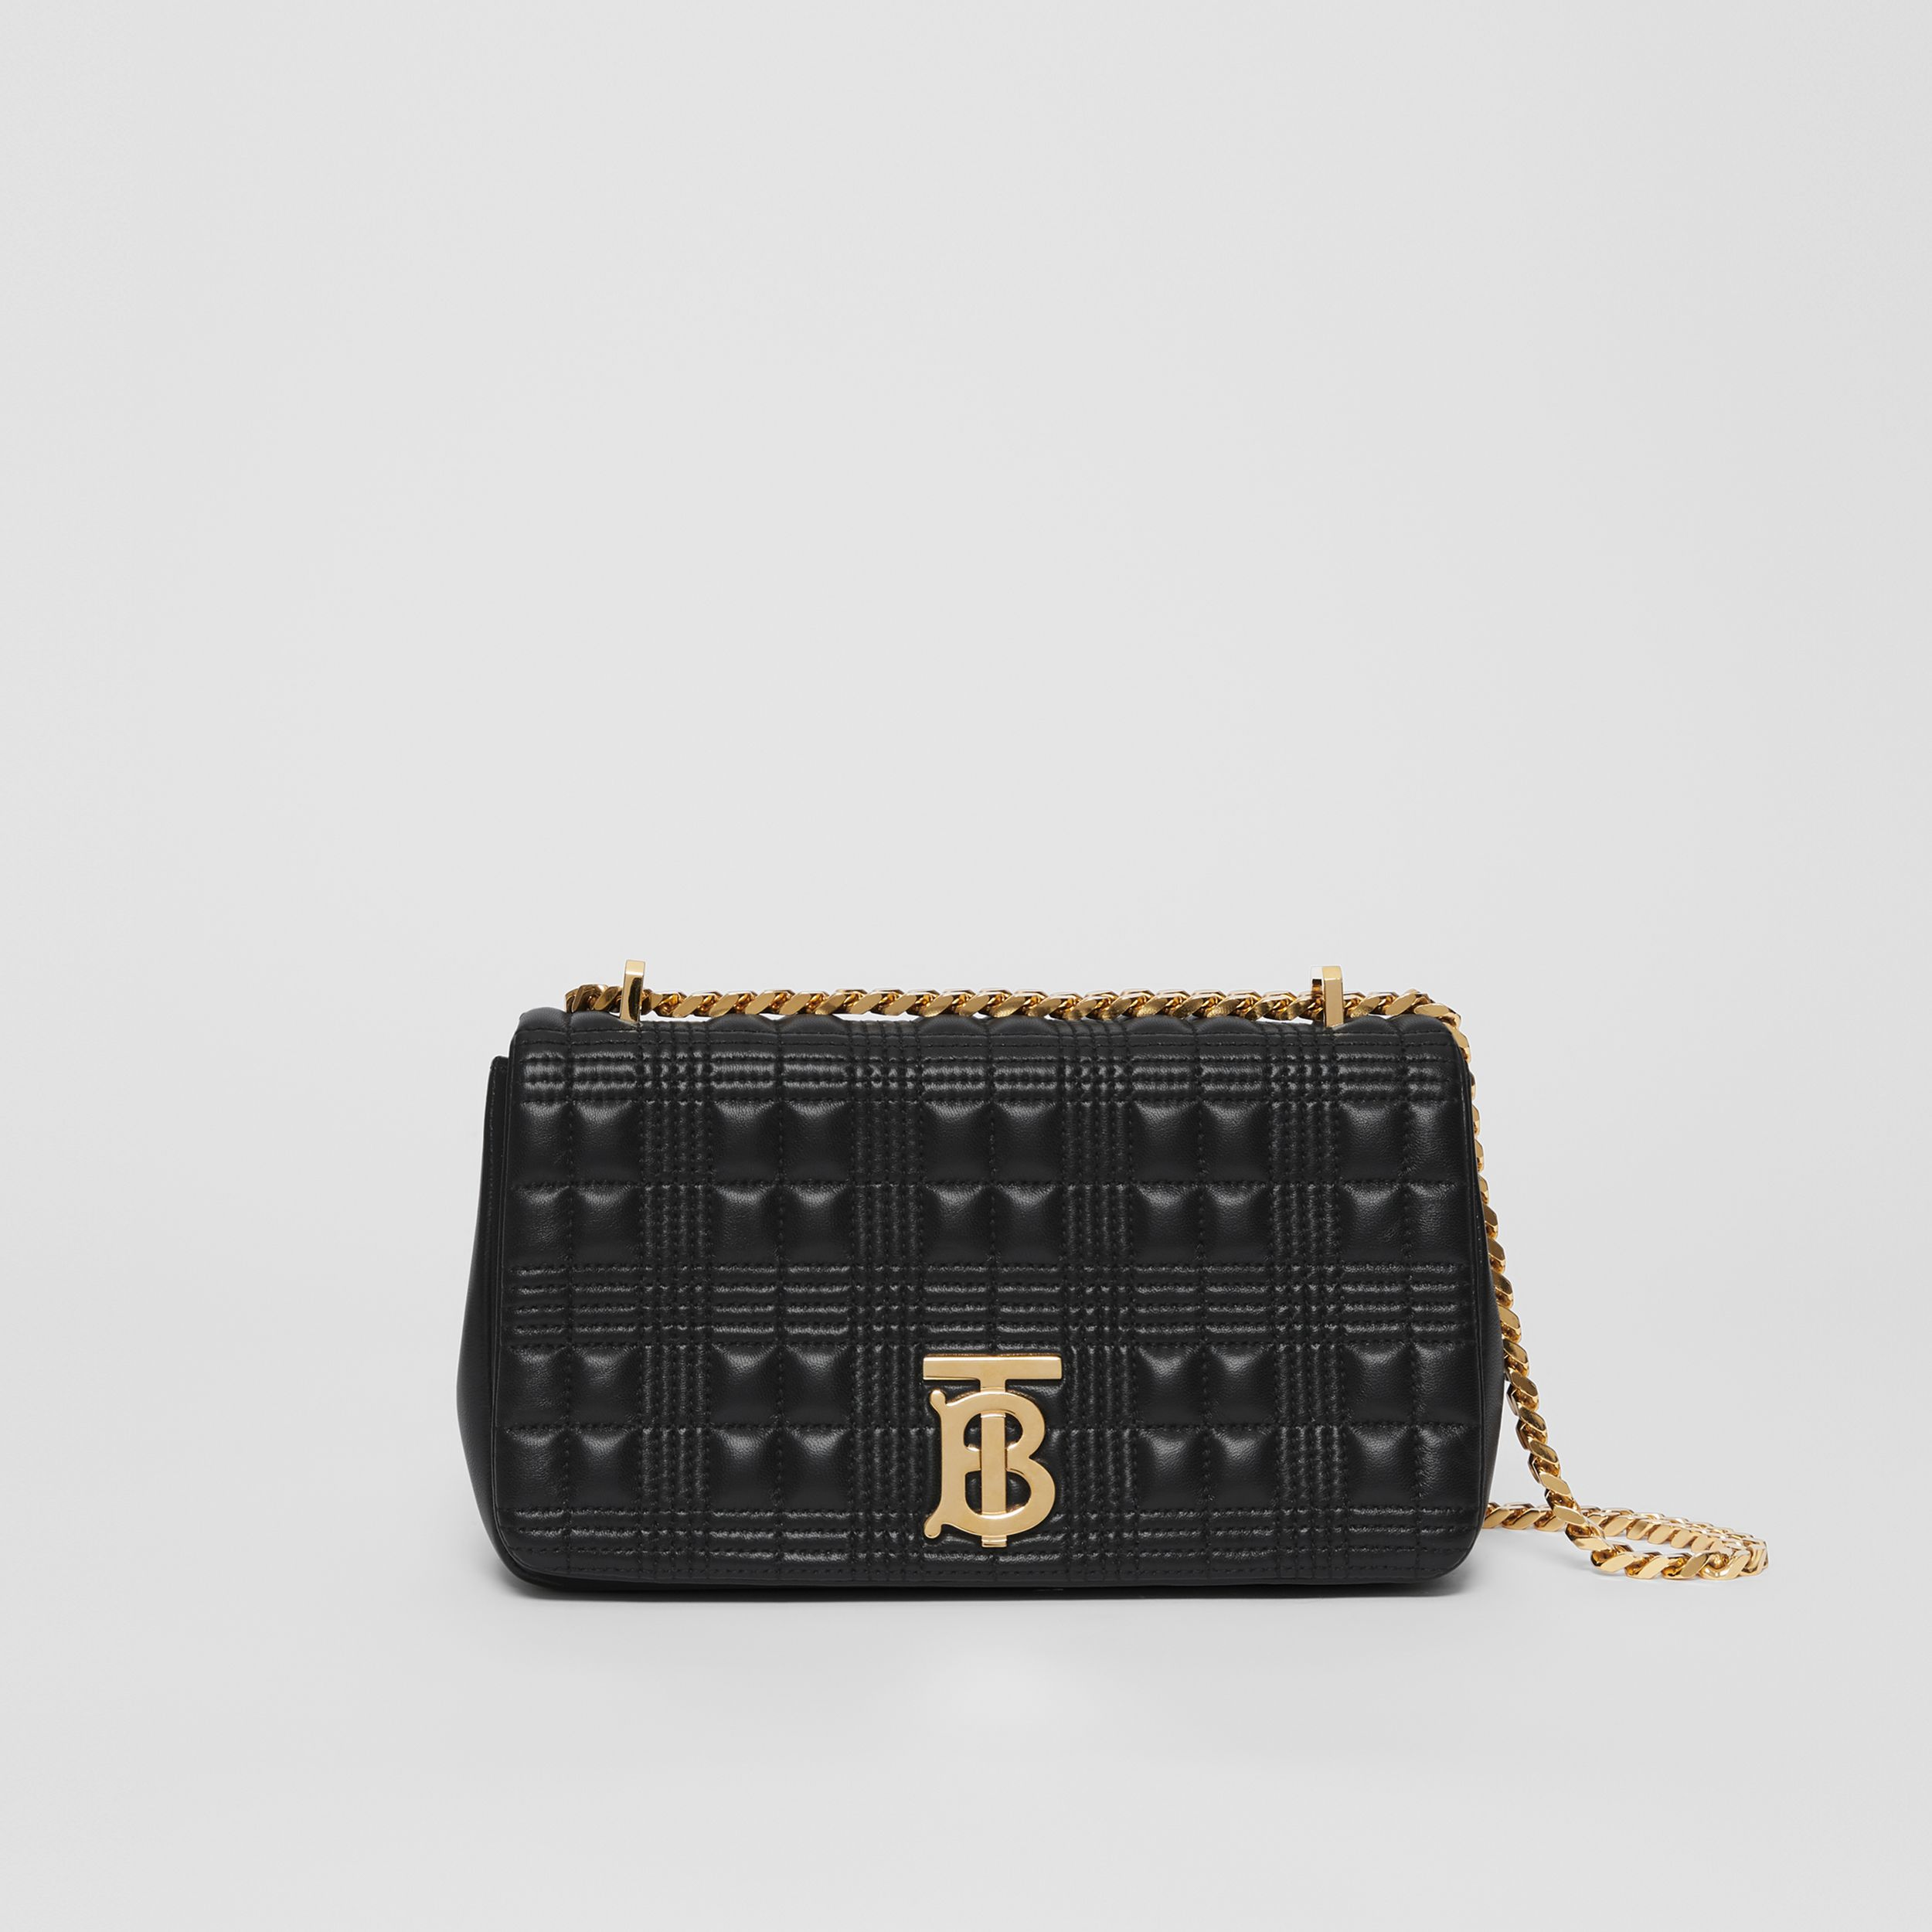 Small Quilted Lambskin Lola Bag in Black/light Gold - Women | Burberry - 1